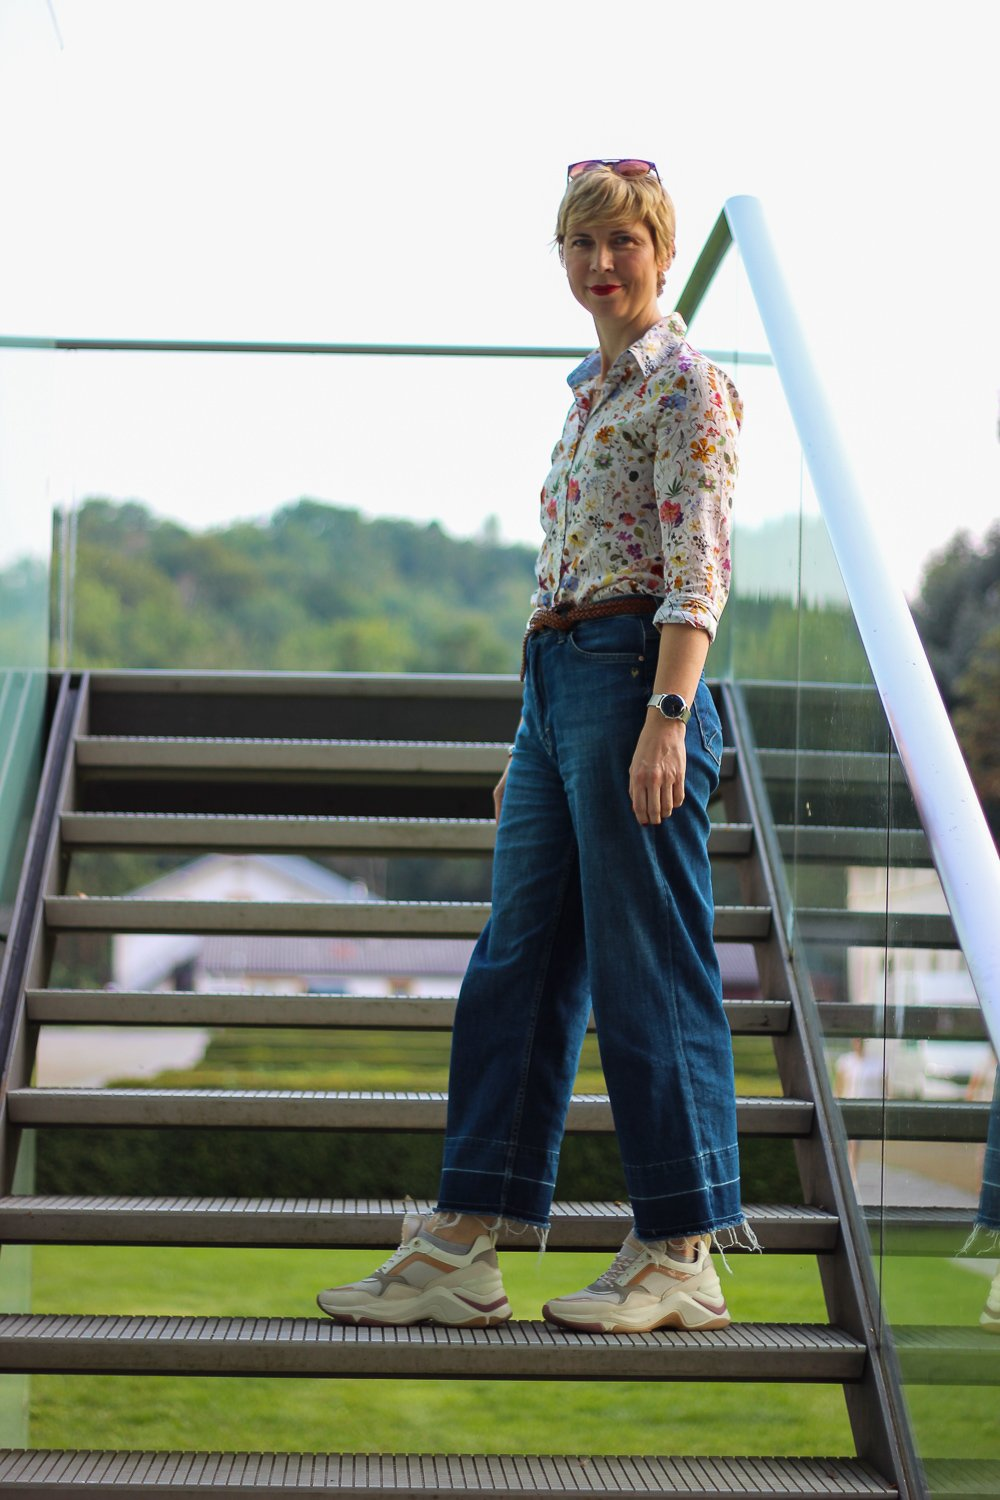 conny-doll-lifestyle: Blumenprint, denim-allover, Herbstlook, Frage